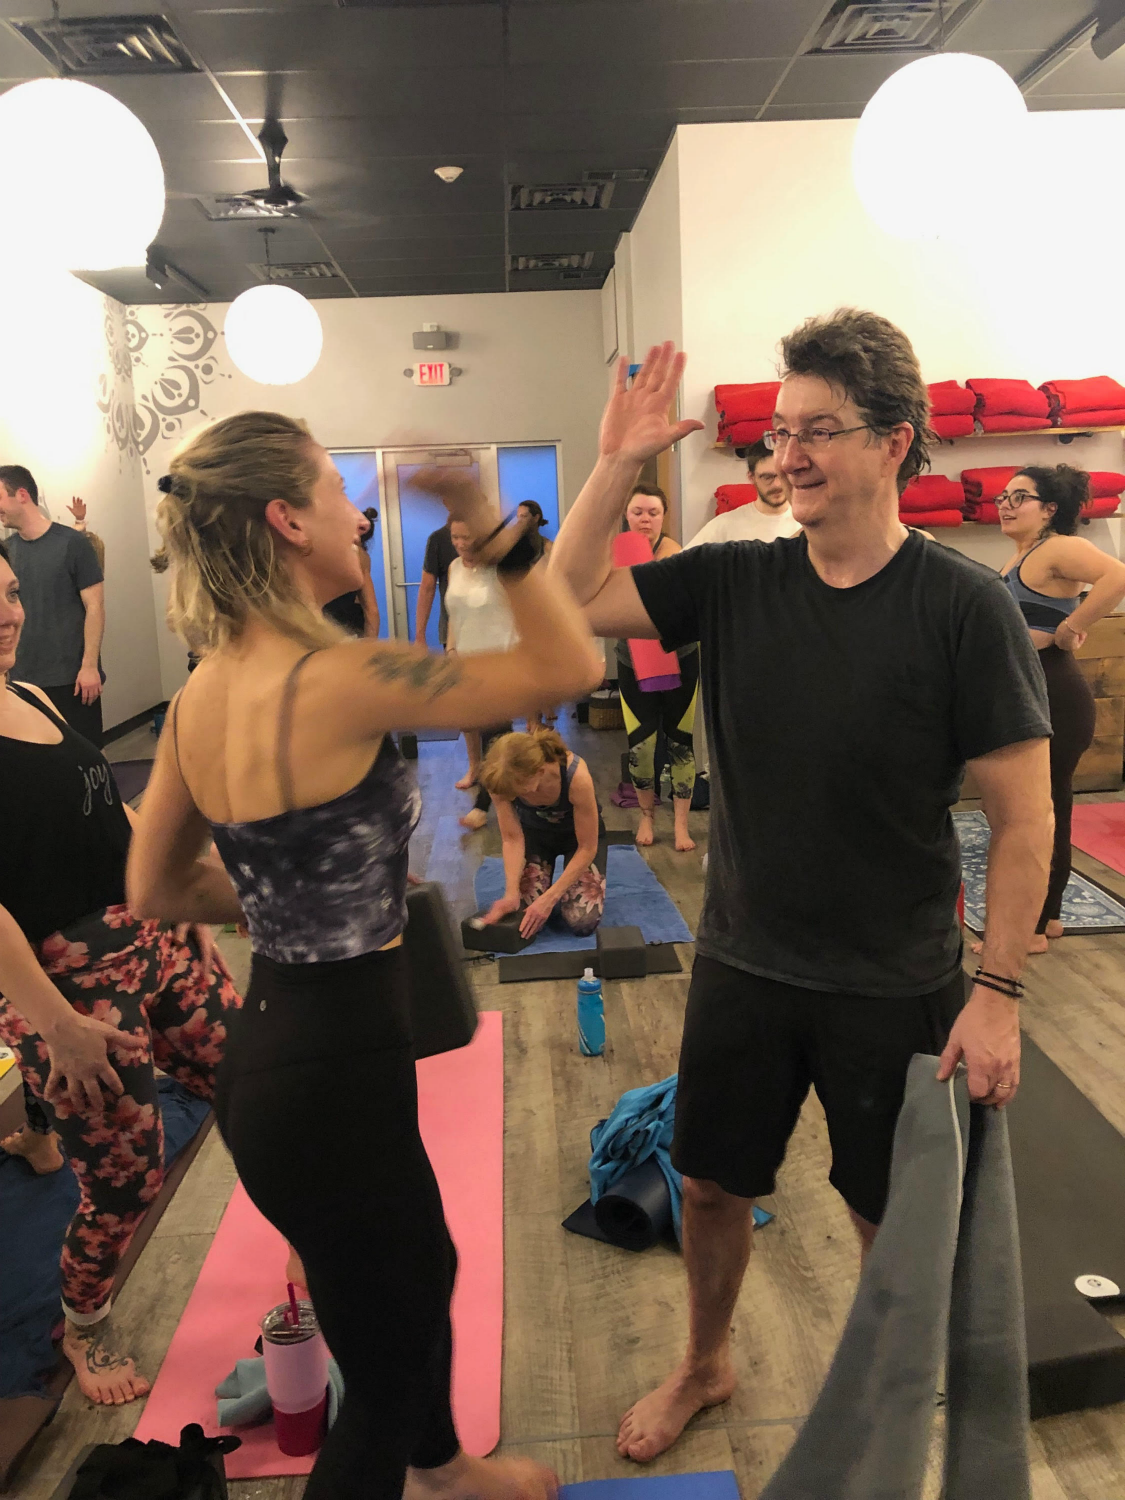 200-Hour Yoga Teacher Trainings are available at Soulfire Power Yoga in Greenland, NH